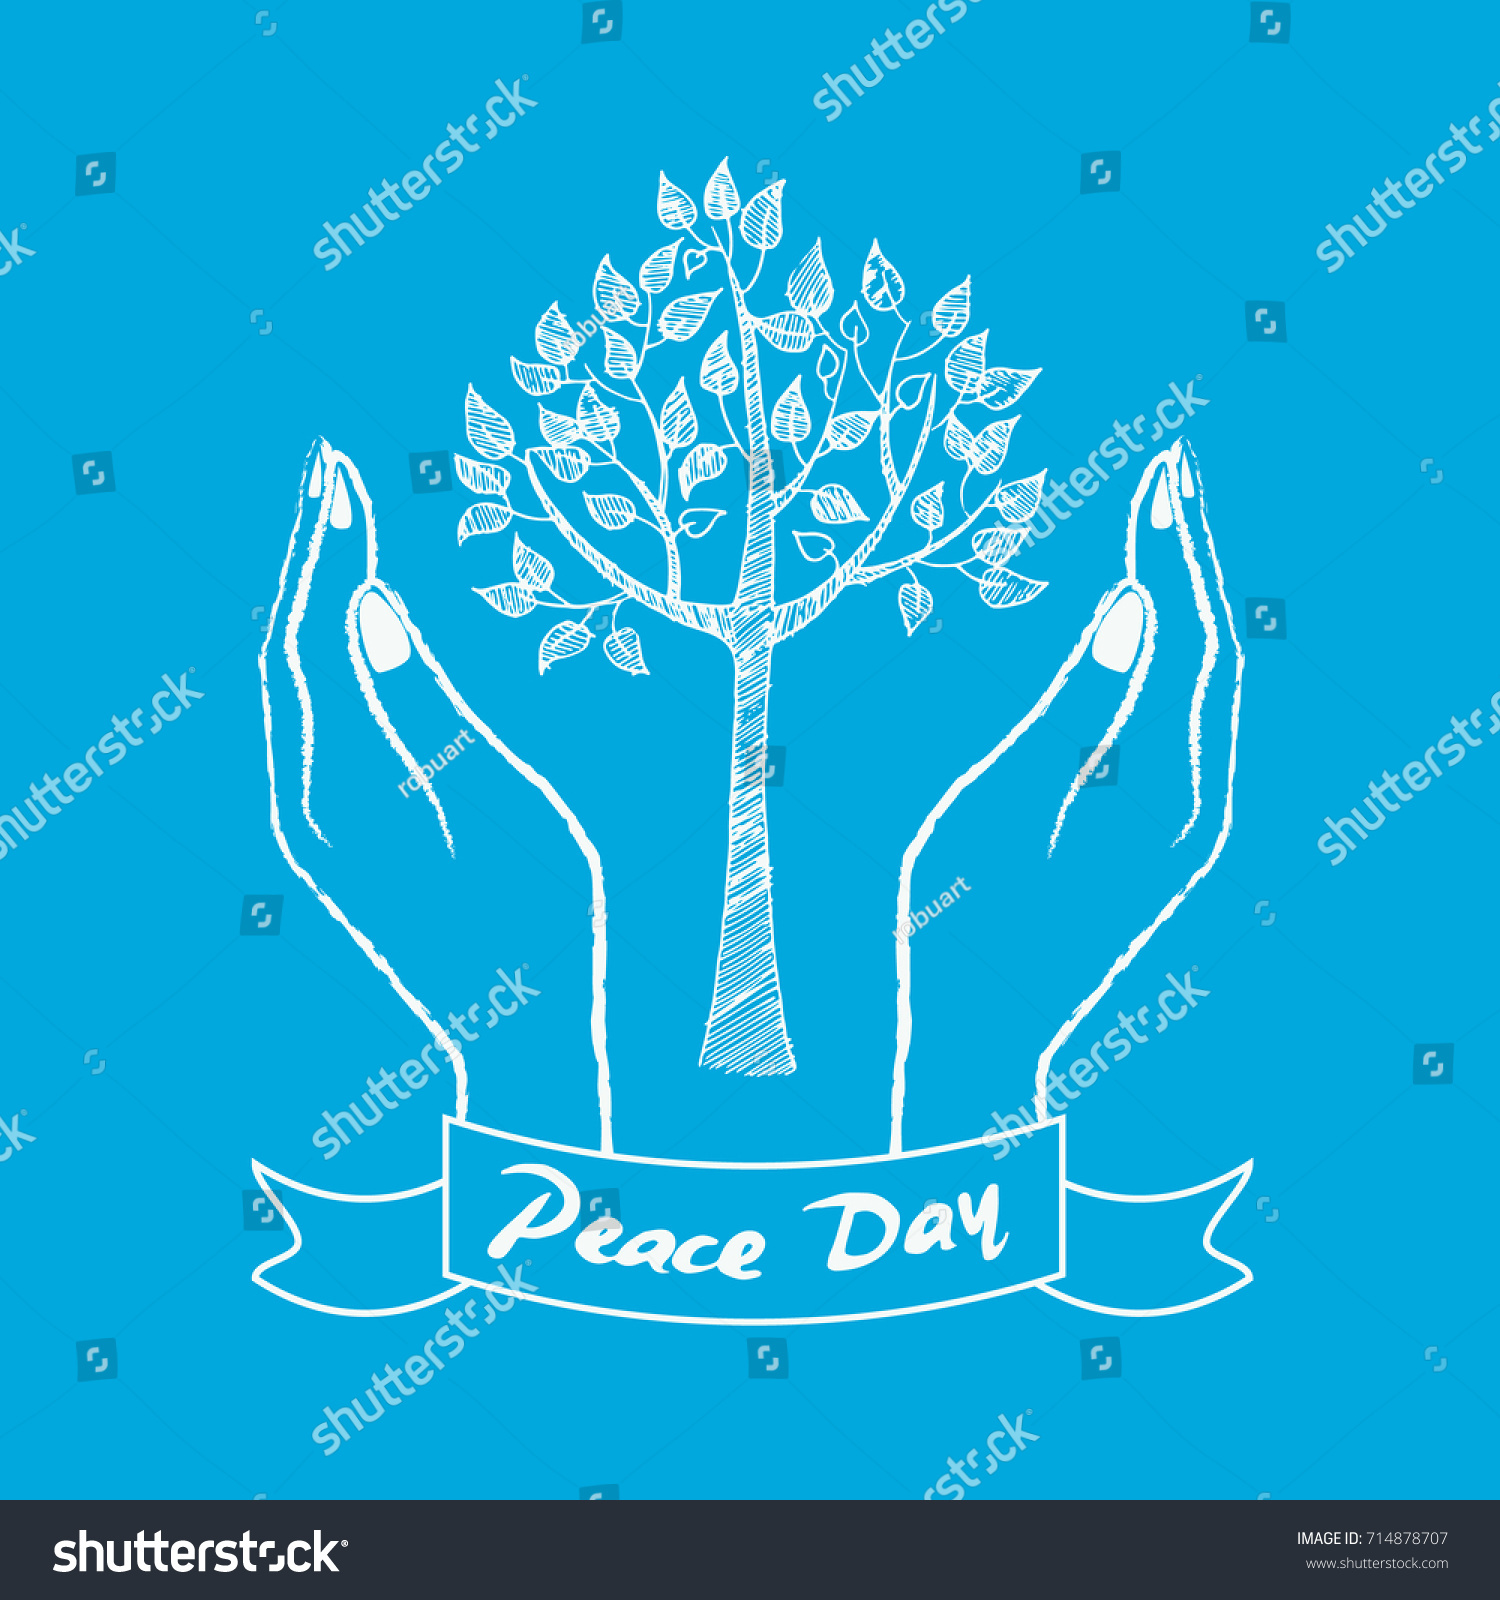 Peace Day Symbol Two Hands Taking Stock Vector 714878707 Shutterstock